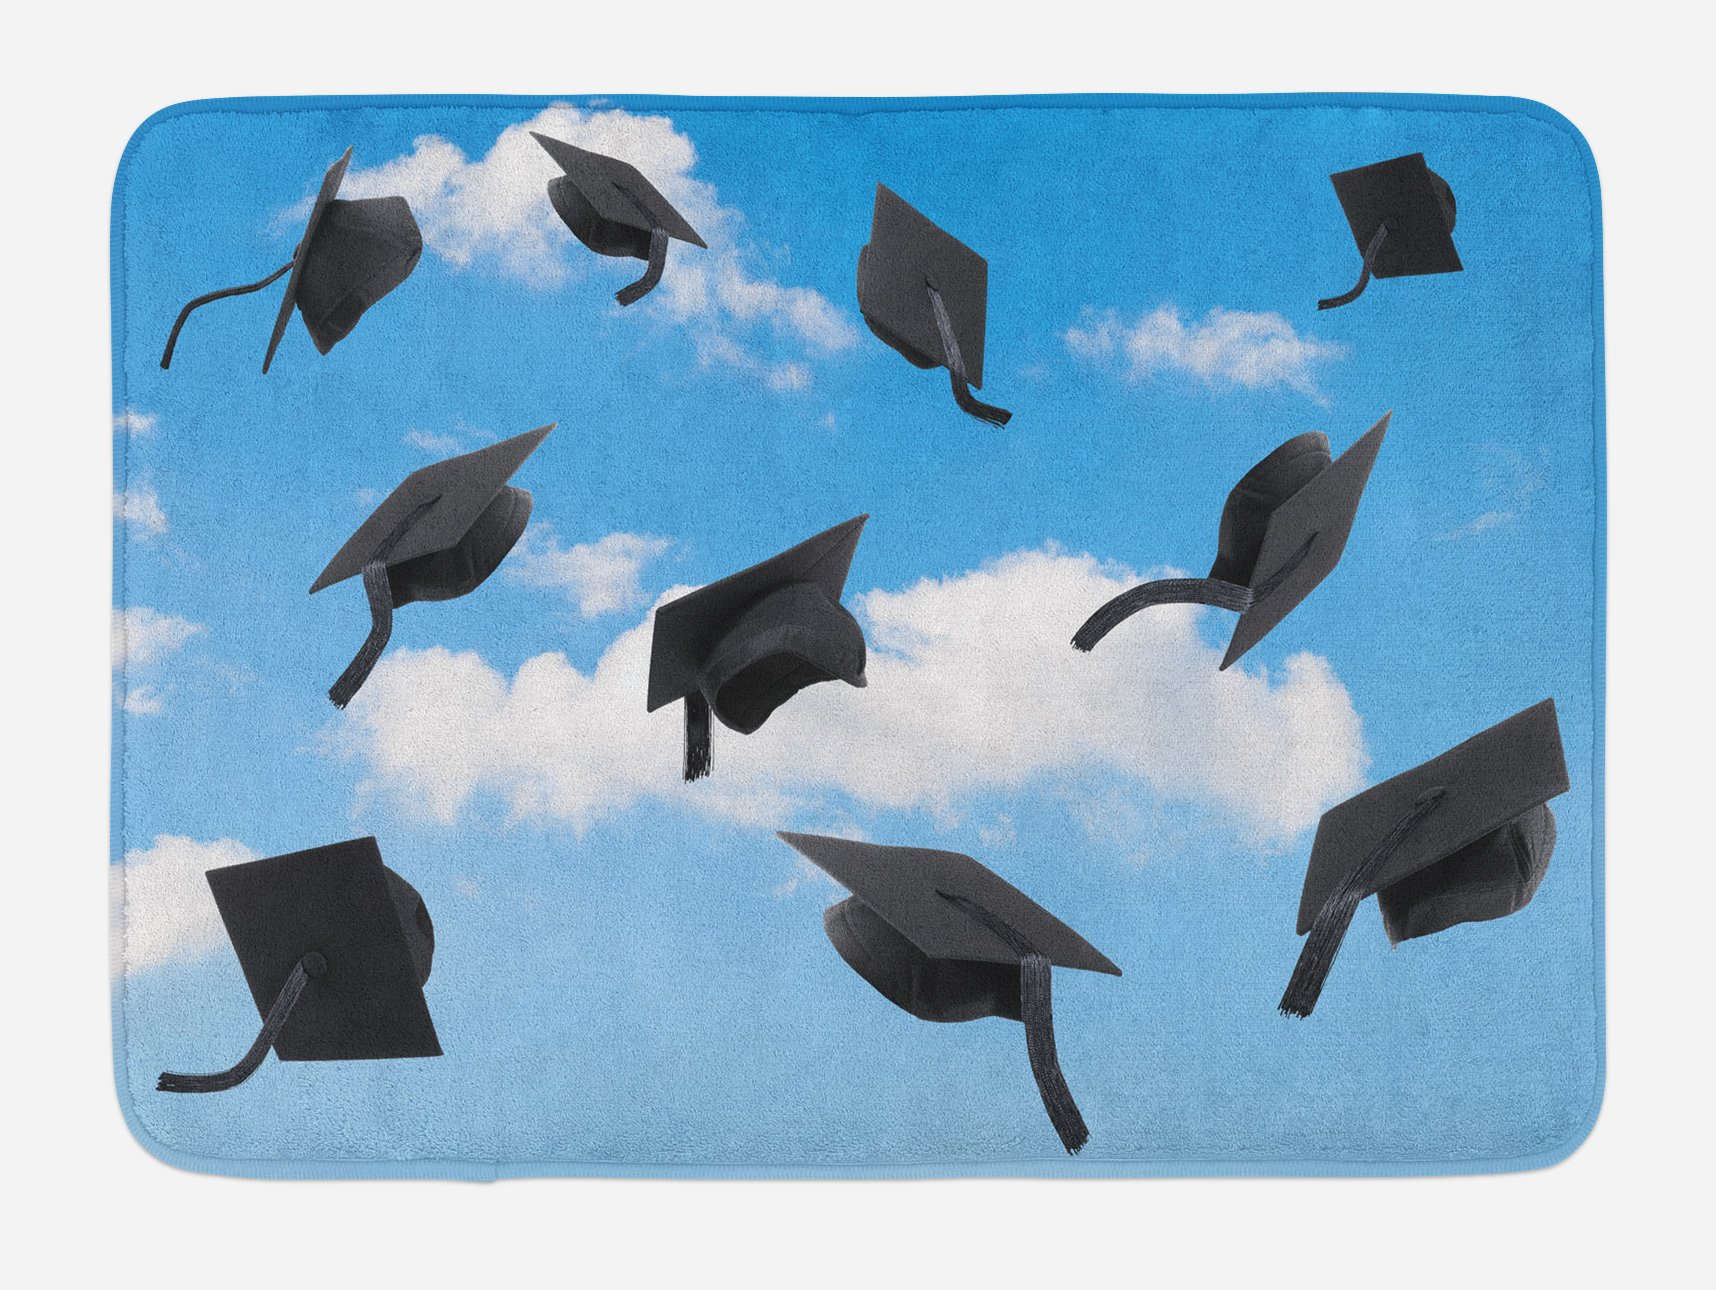 Lunarable Graduation Bath Mat, Caps Thrown into Sky Last of the School Highschool College Ceremony Picture, Plush Bathroom Decor Mat with Non Slip Backing, 29.5 W X 17.5 W Inches, Blue Black by Lunarable (Image #1)